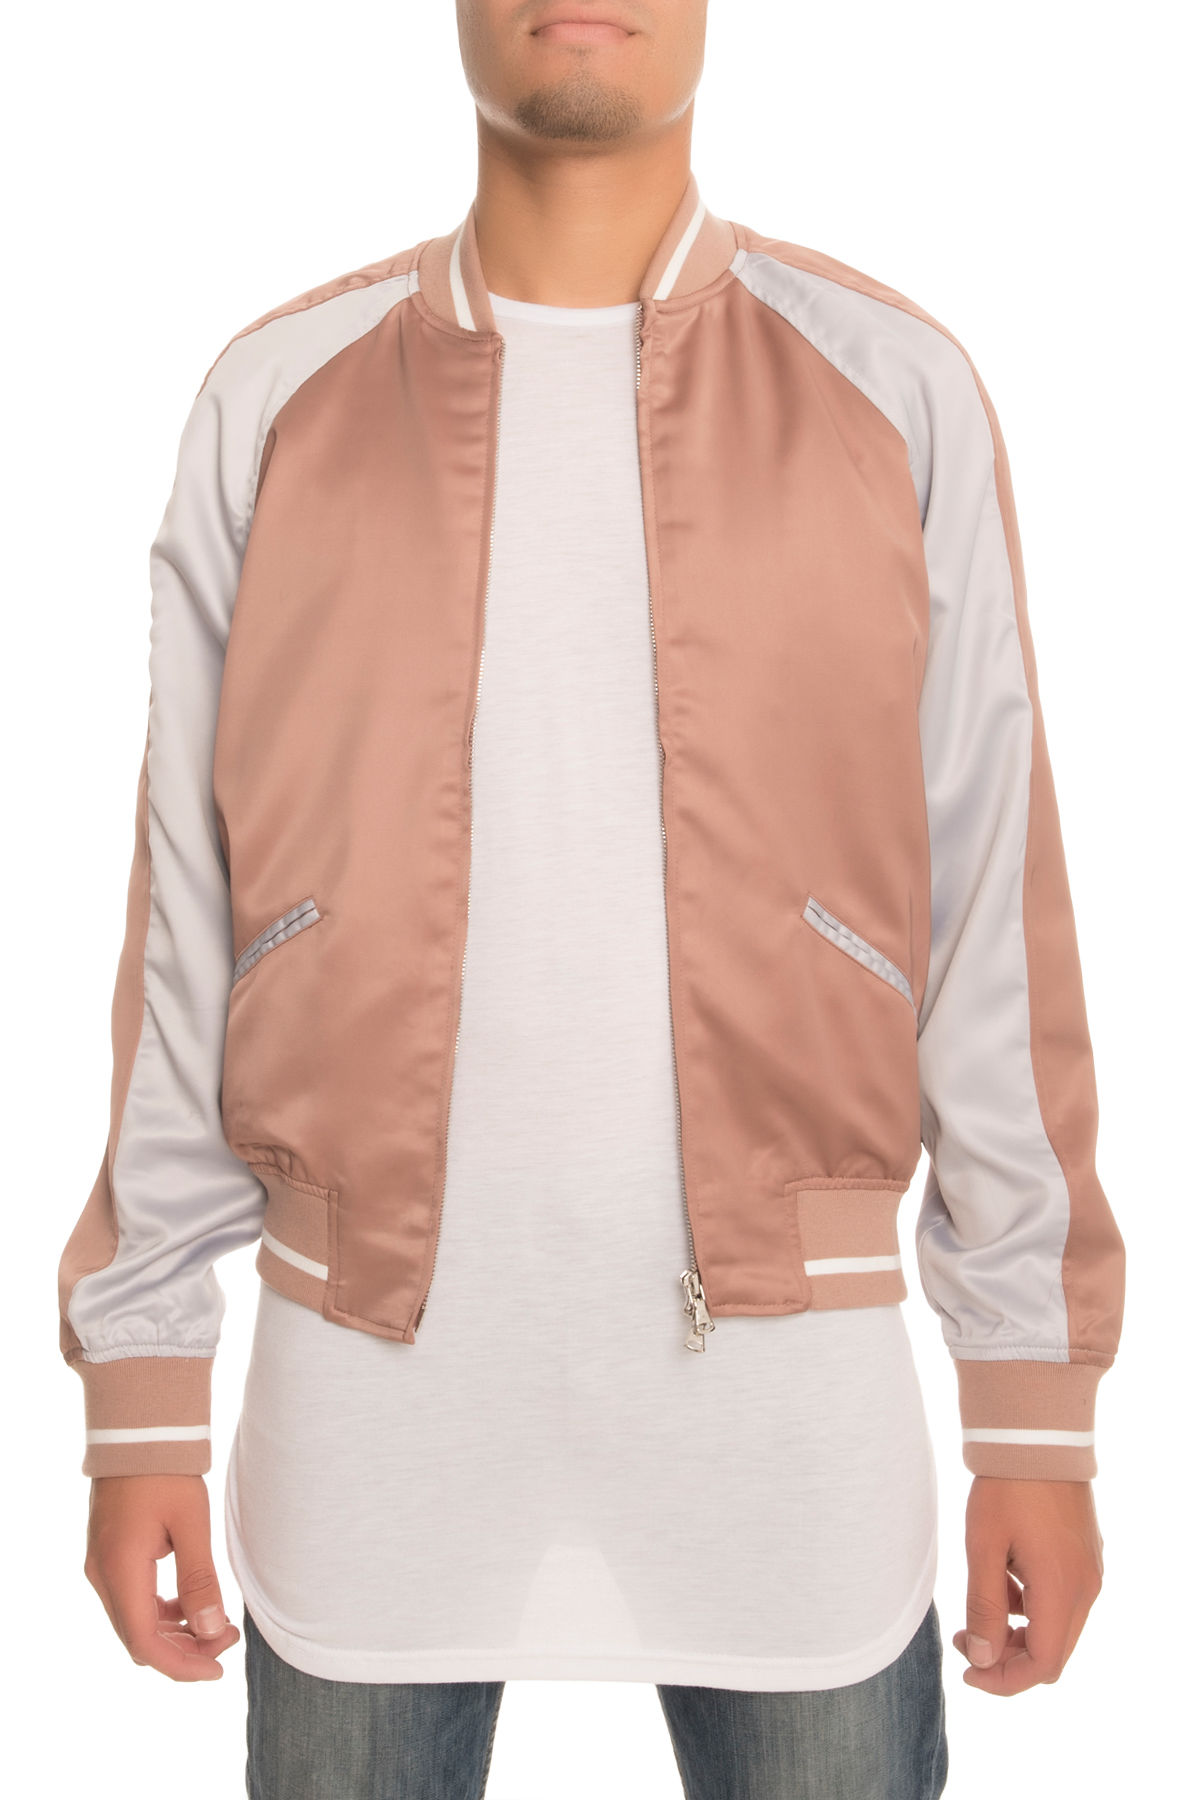 Image of The Strickland Souvenir Jacket in Champagne